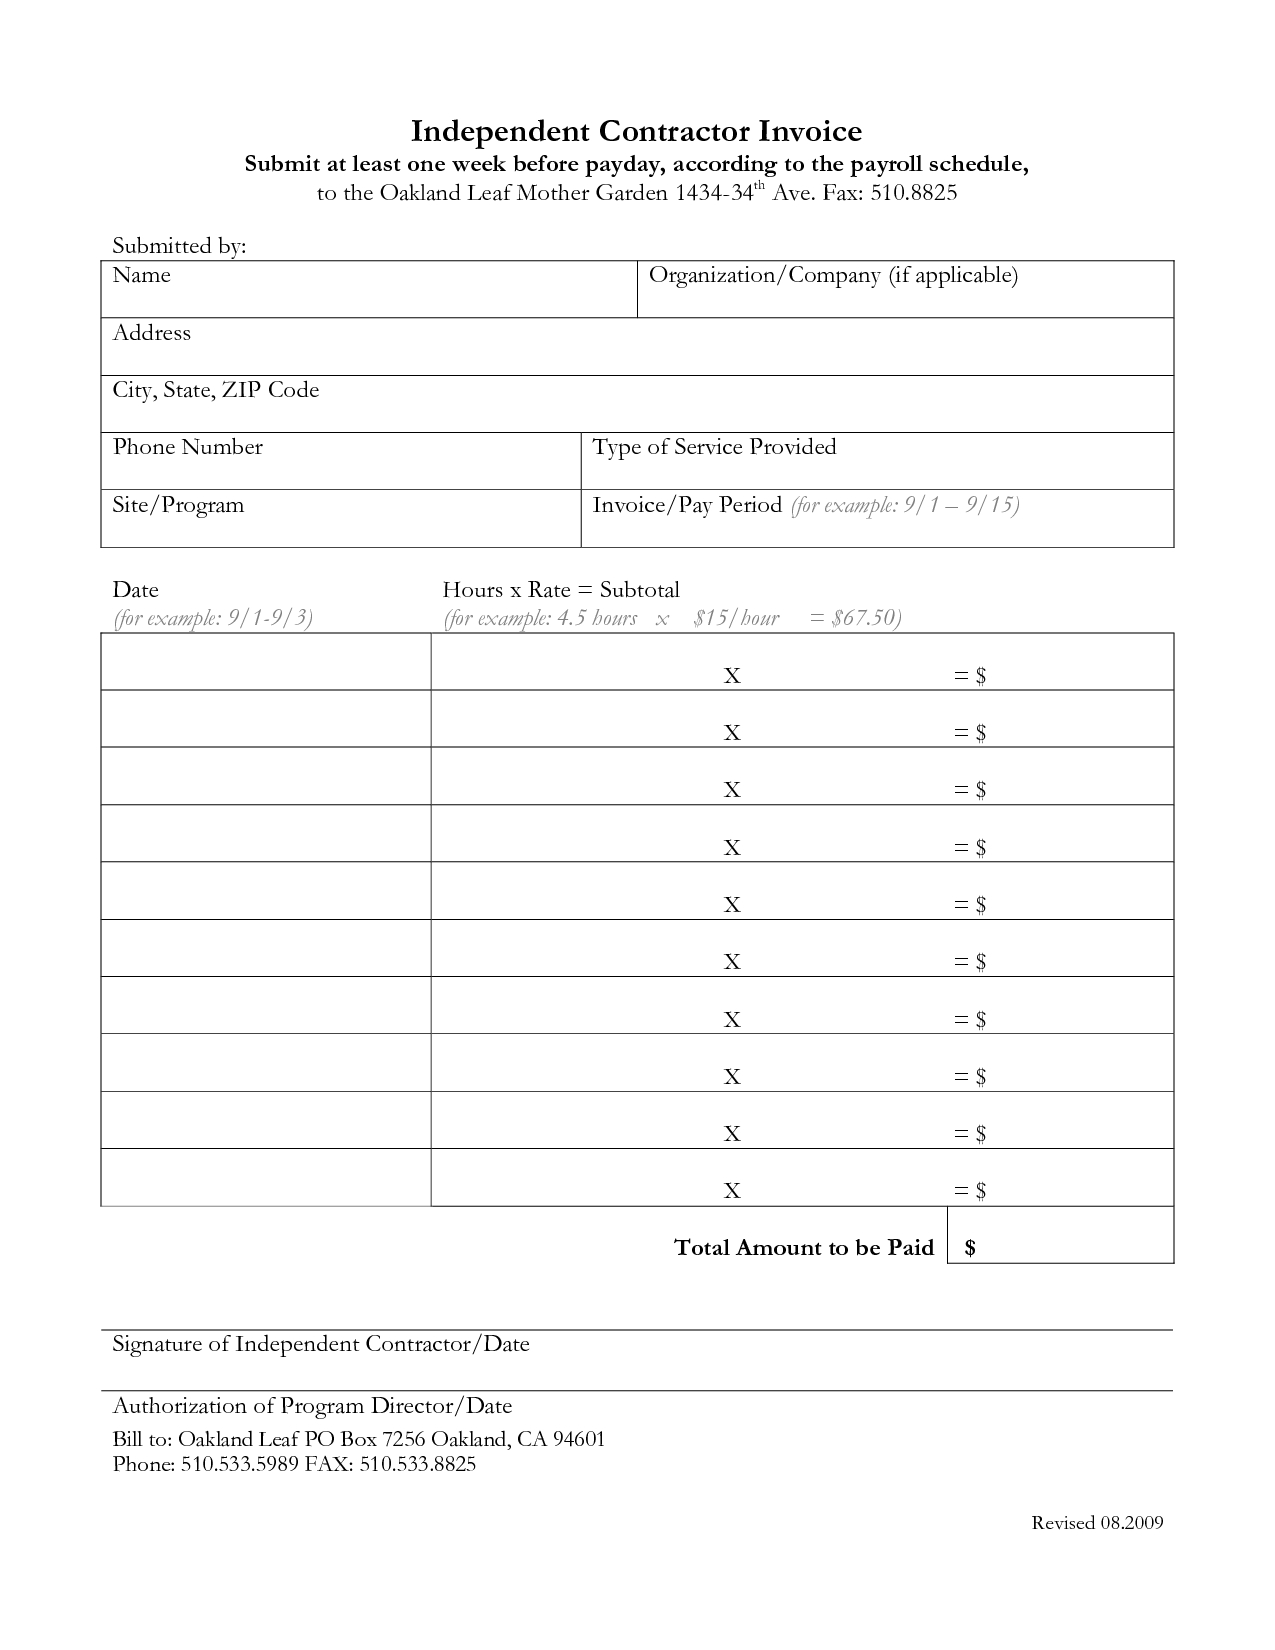 Independent Contractor Invoice Template Invoice Template Ideas – Payroll Receipt Template